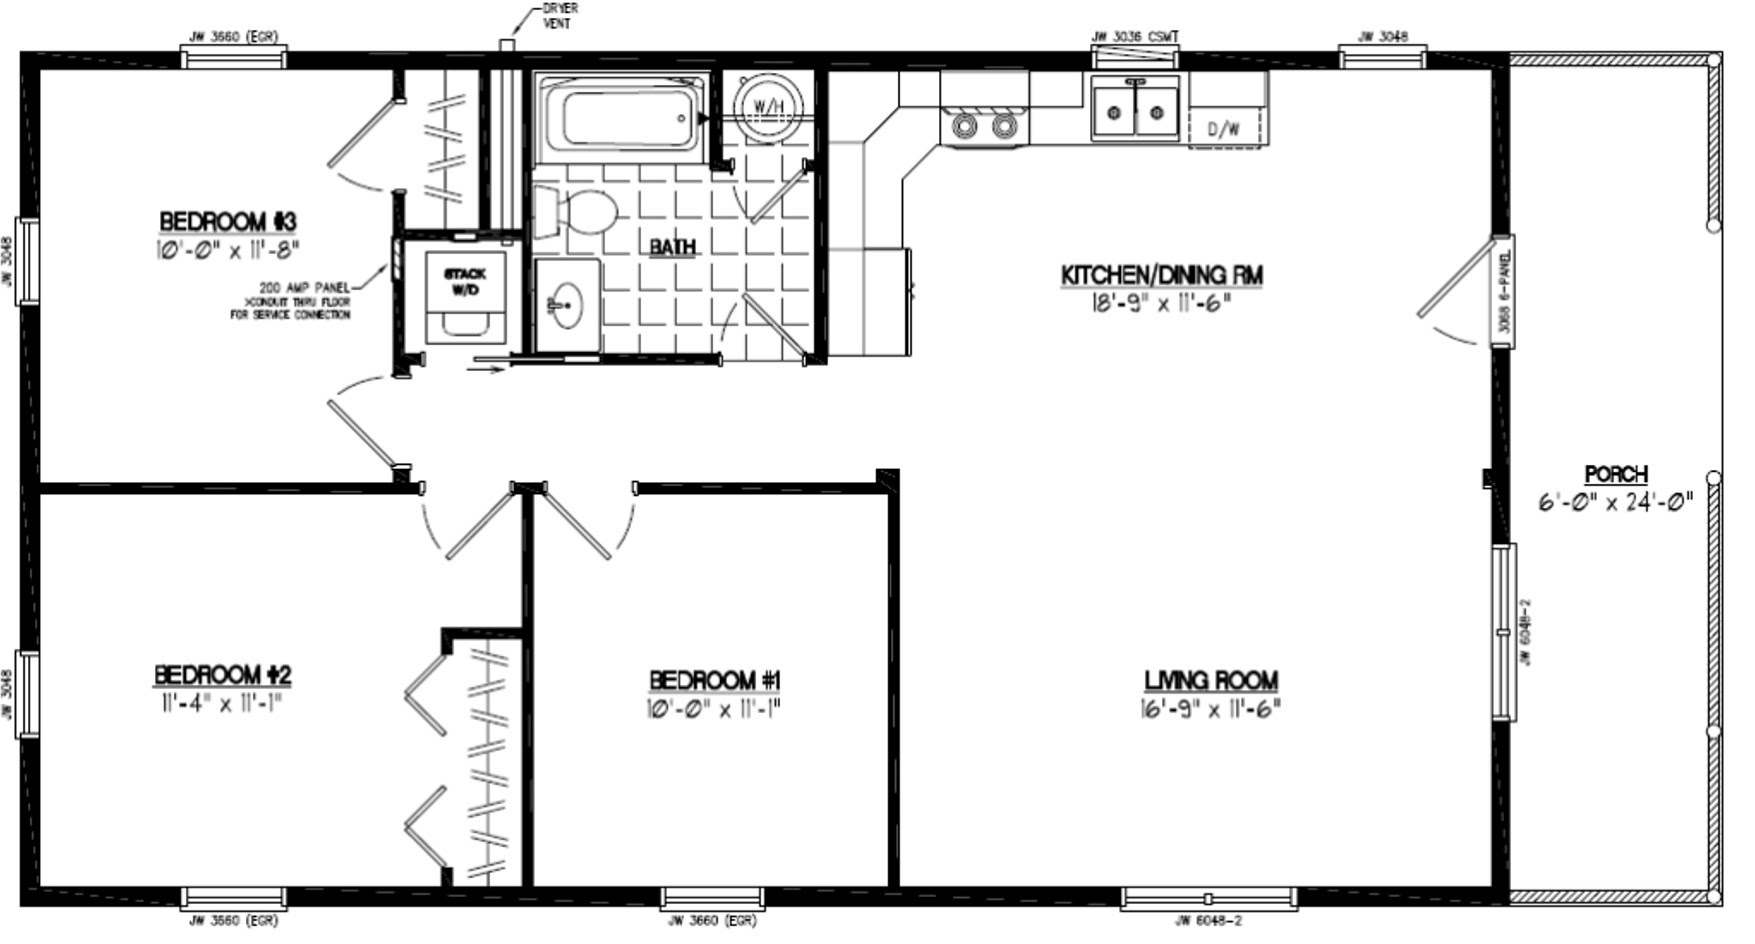 Tiny House Plans 12 X 36 ~ Download Shed Plans on 20 x 24 house floor plans, 12 by 40 house plans, garage plans, 24 foot wide house plans, 24 by 24 house plans, 24 x 34 house plans, 12 by 12 house plans, 24 x 36 house plans, wood shop design plans, 12 x 12 kitchen plans, 24 x 32 house plans,